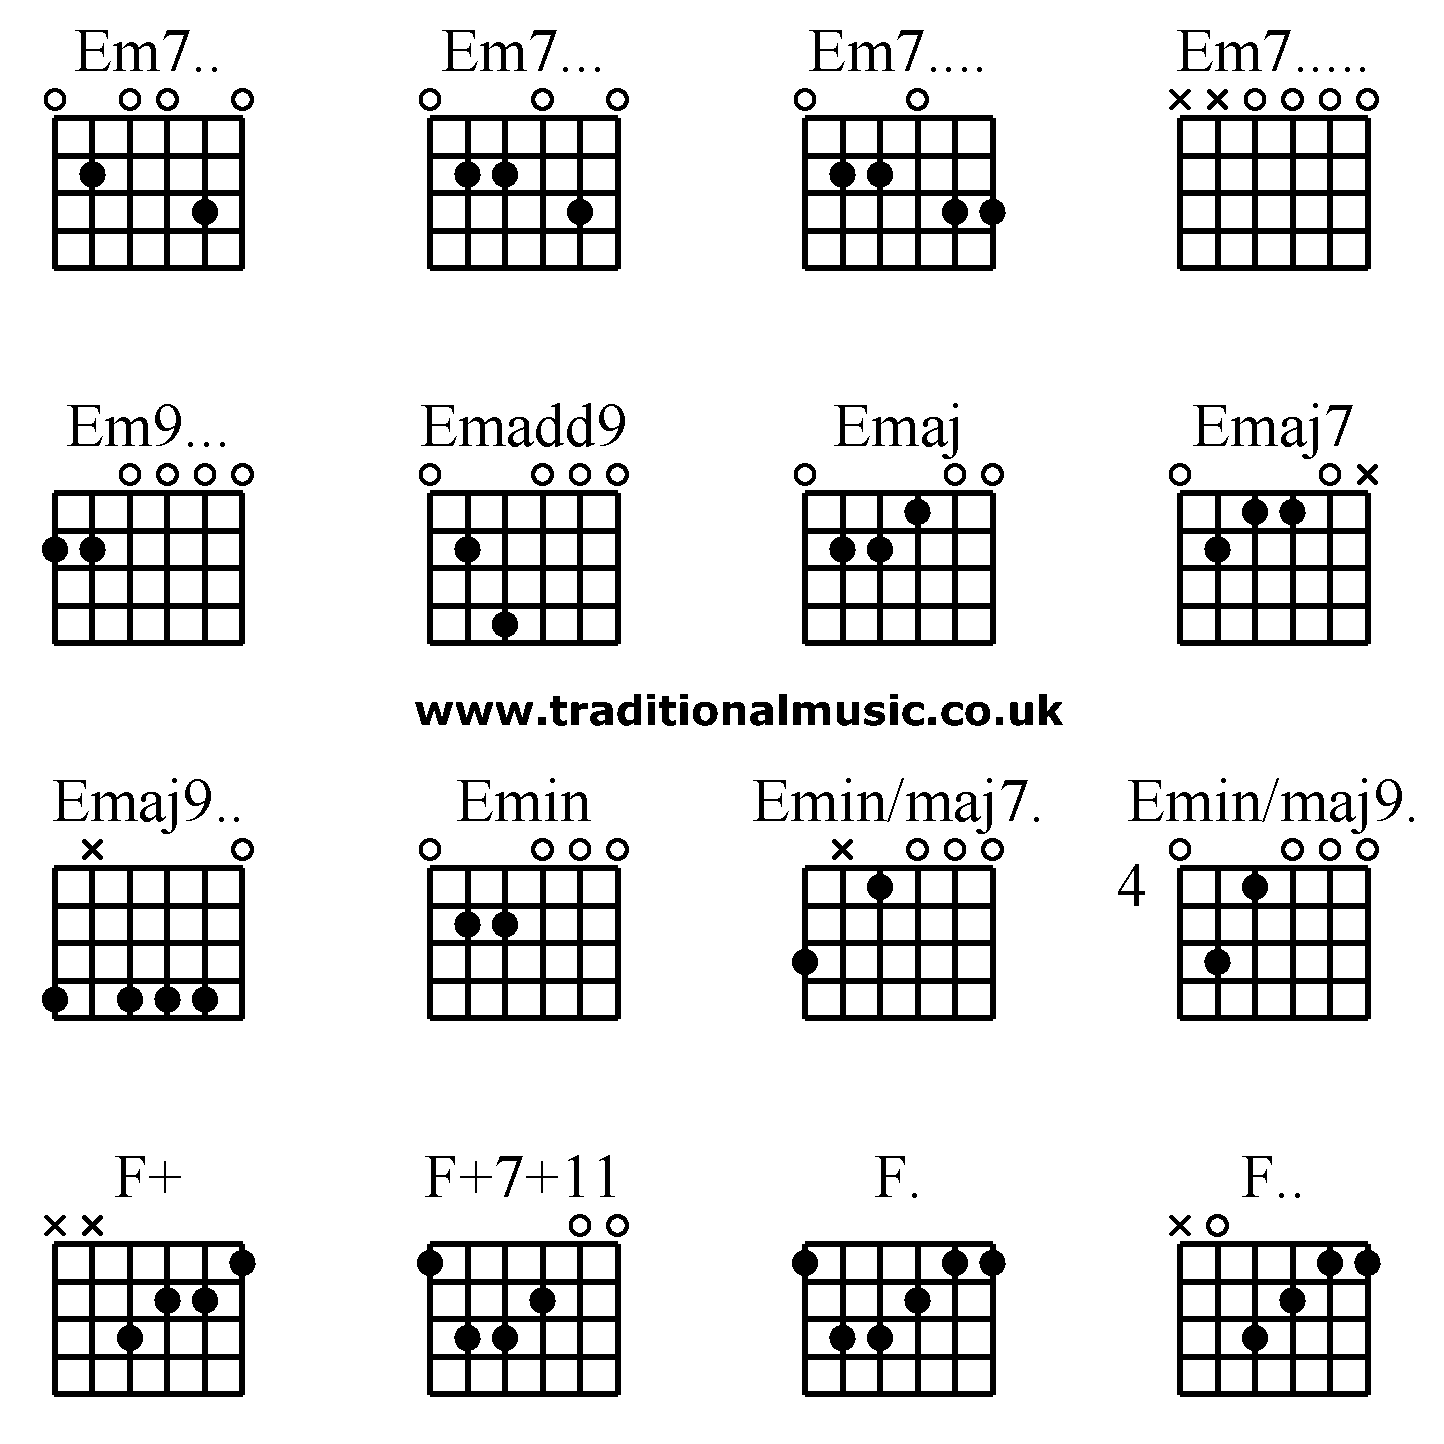 Dpmusicservices great chord sequence play em7 a7 am7 advanced chord chart and fingering diagram for guitar hexwebz Choice Image